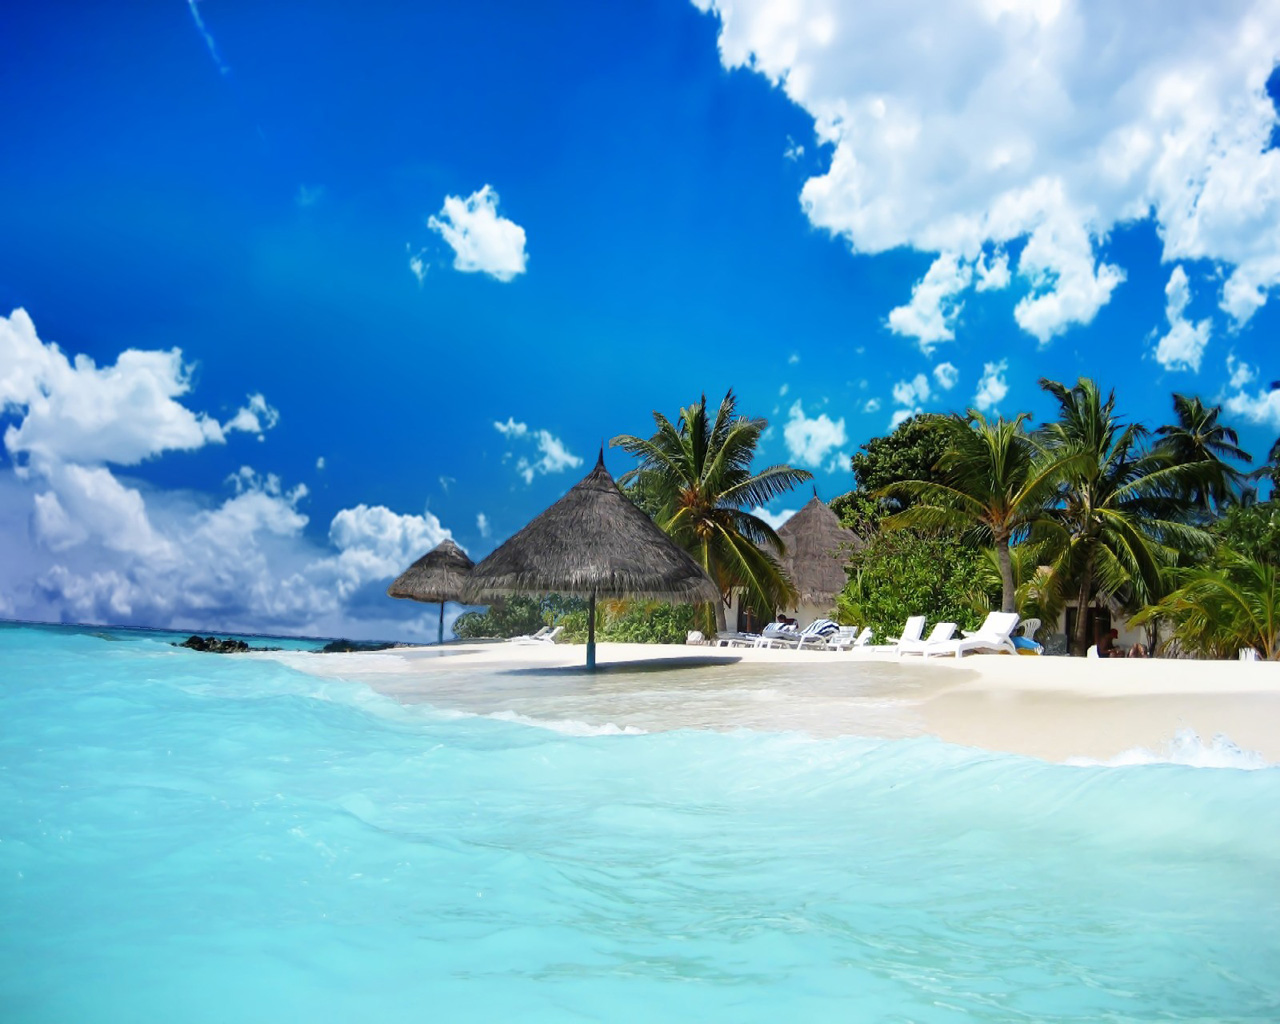 Beautiful Beach Resort Wallpapers, Beautiful Beach Resort Myspace